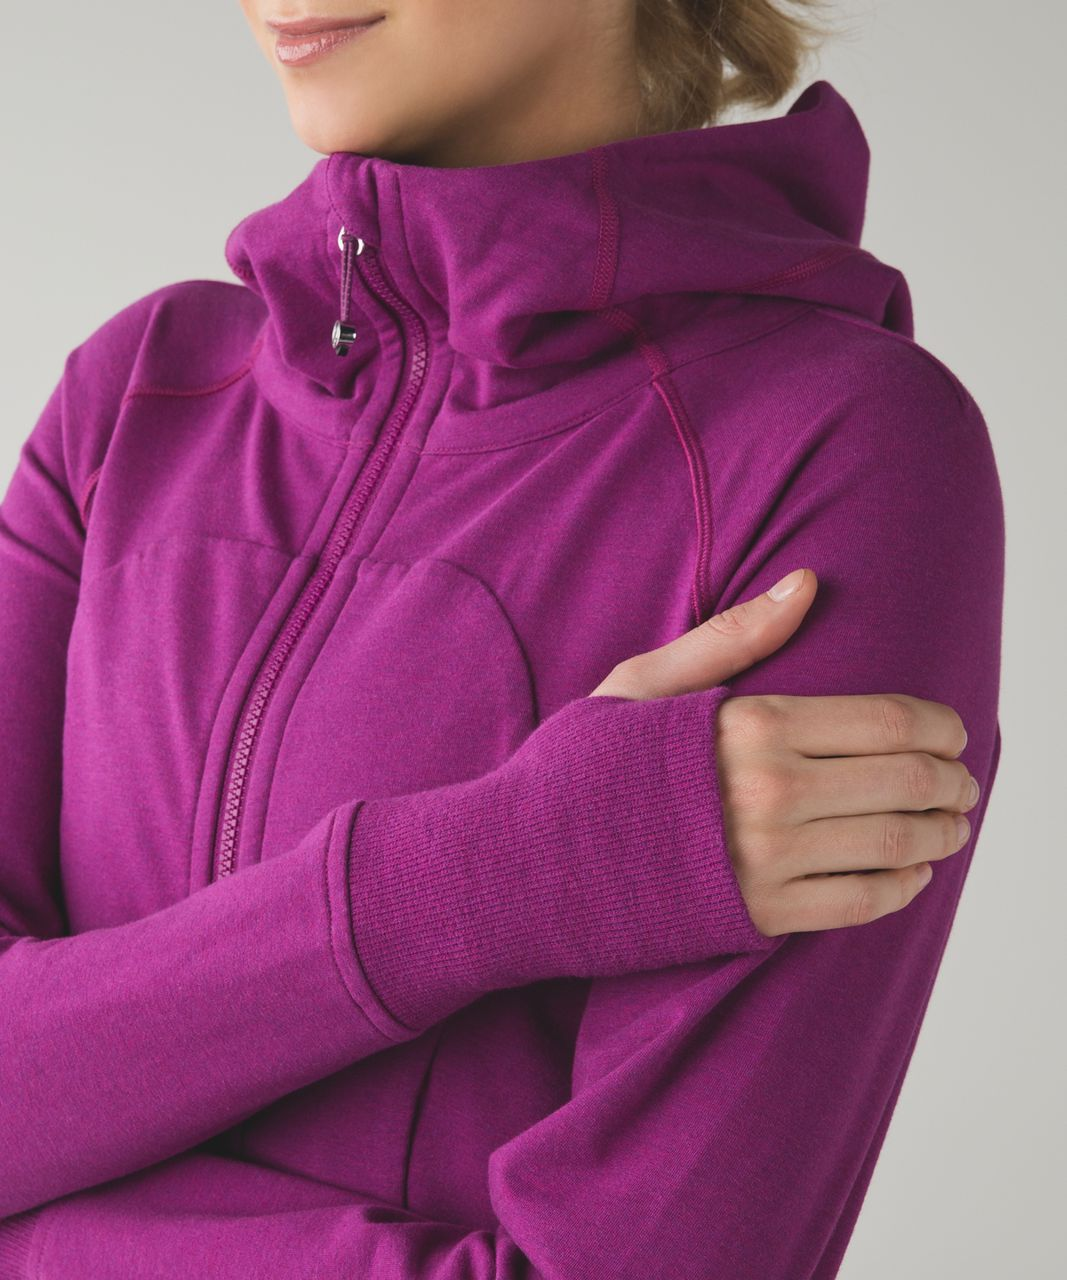 Lululemon Scuba Hoodie III (Terry) - Heathered Regal Plum